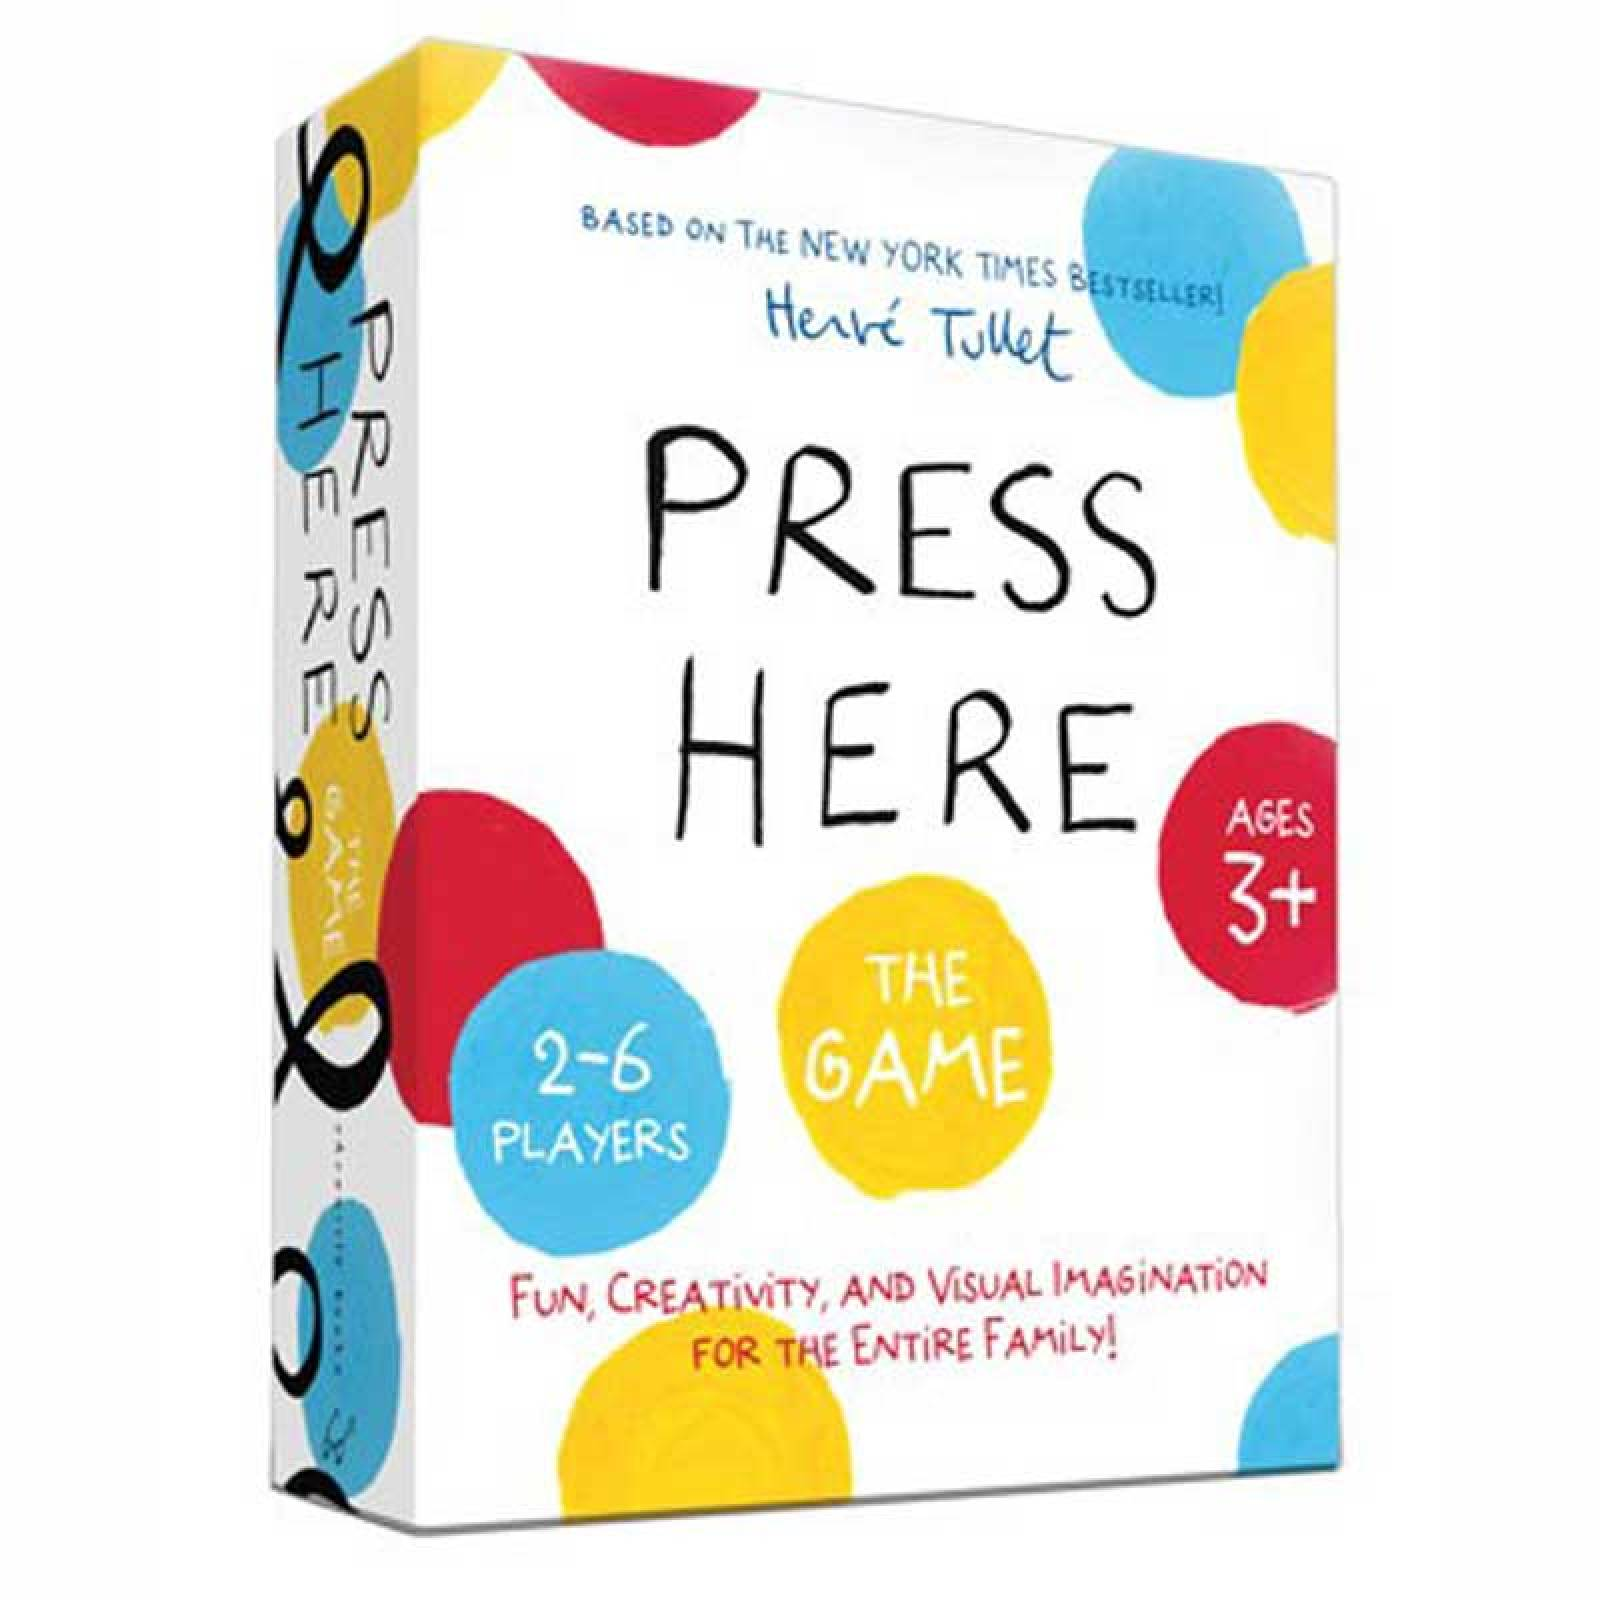 Press Here The Game 3+